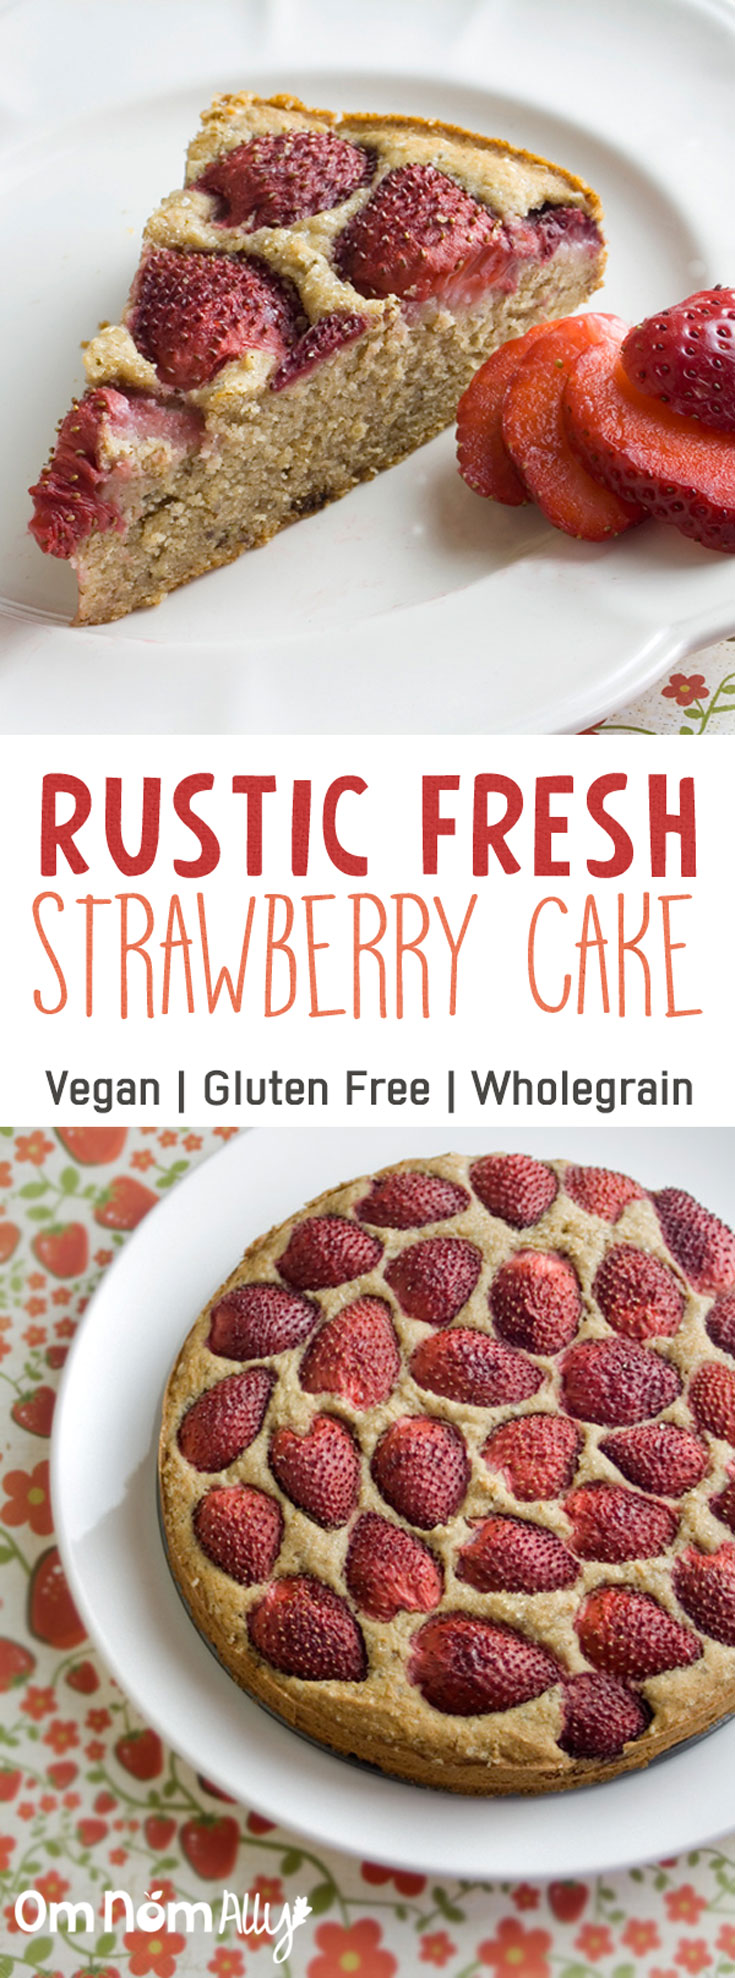 Rustic Fresh Strawberry Cake @OmNomAlly | Wholegrain, Gluten-free, Vegan